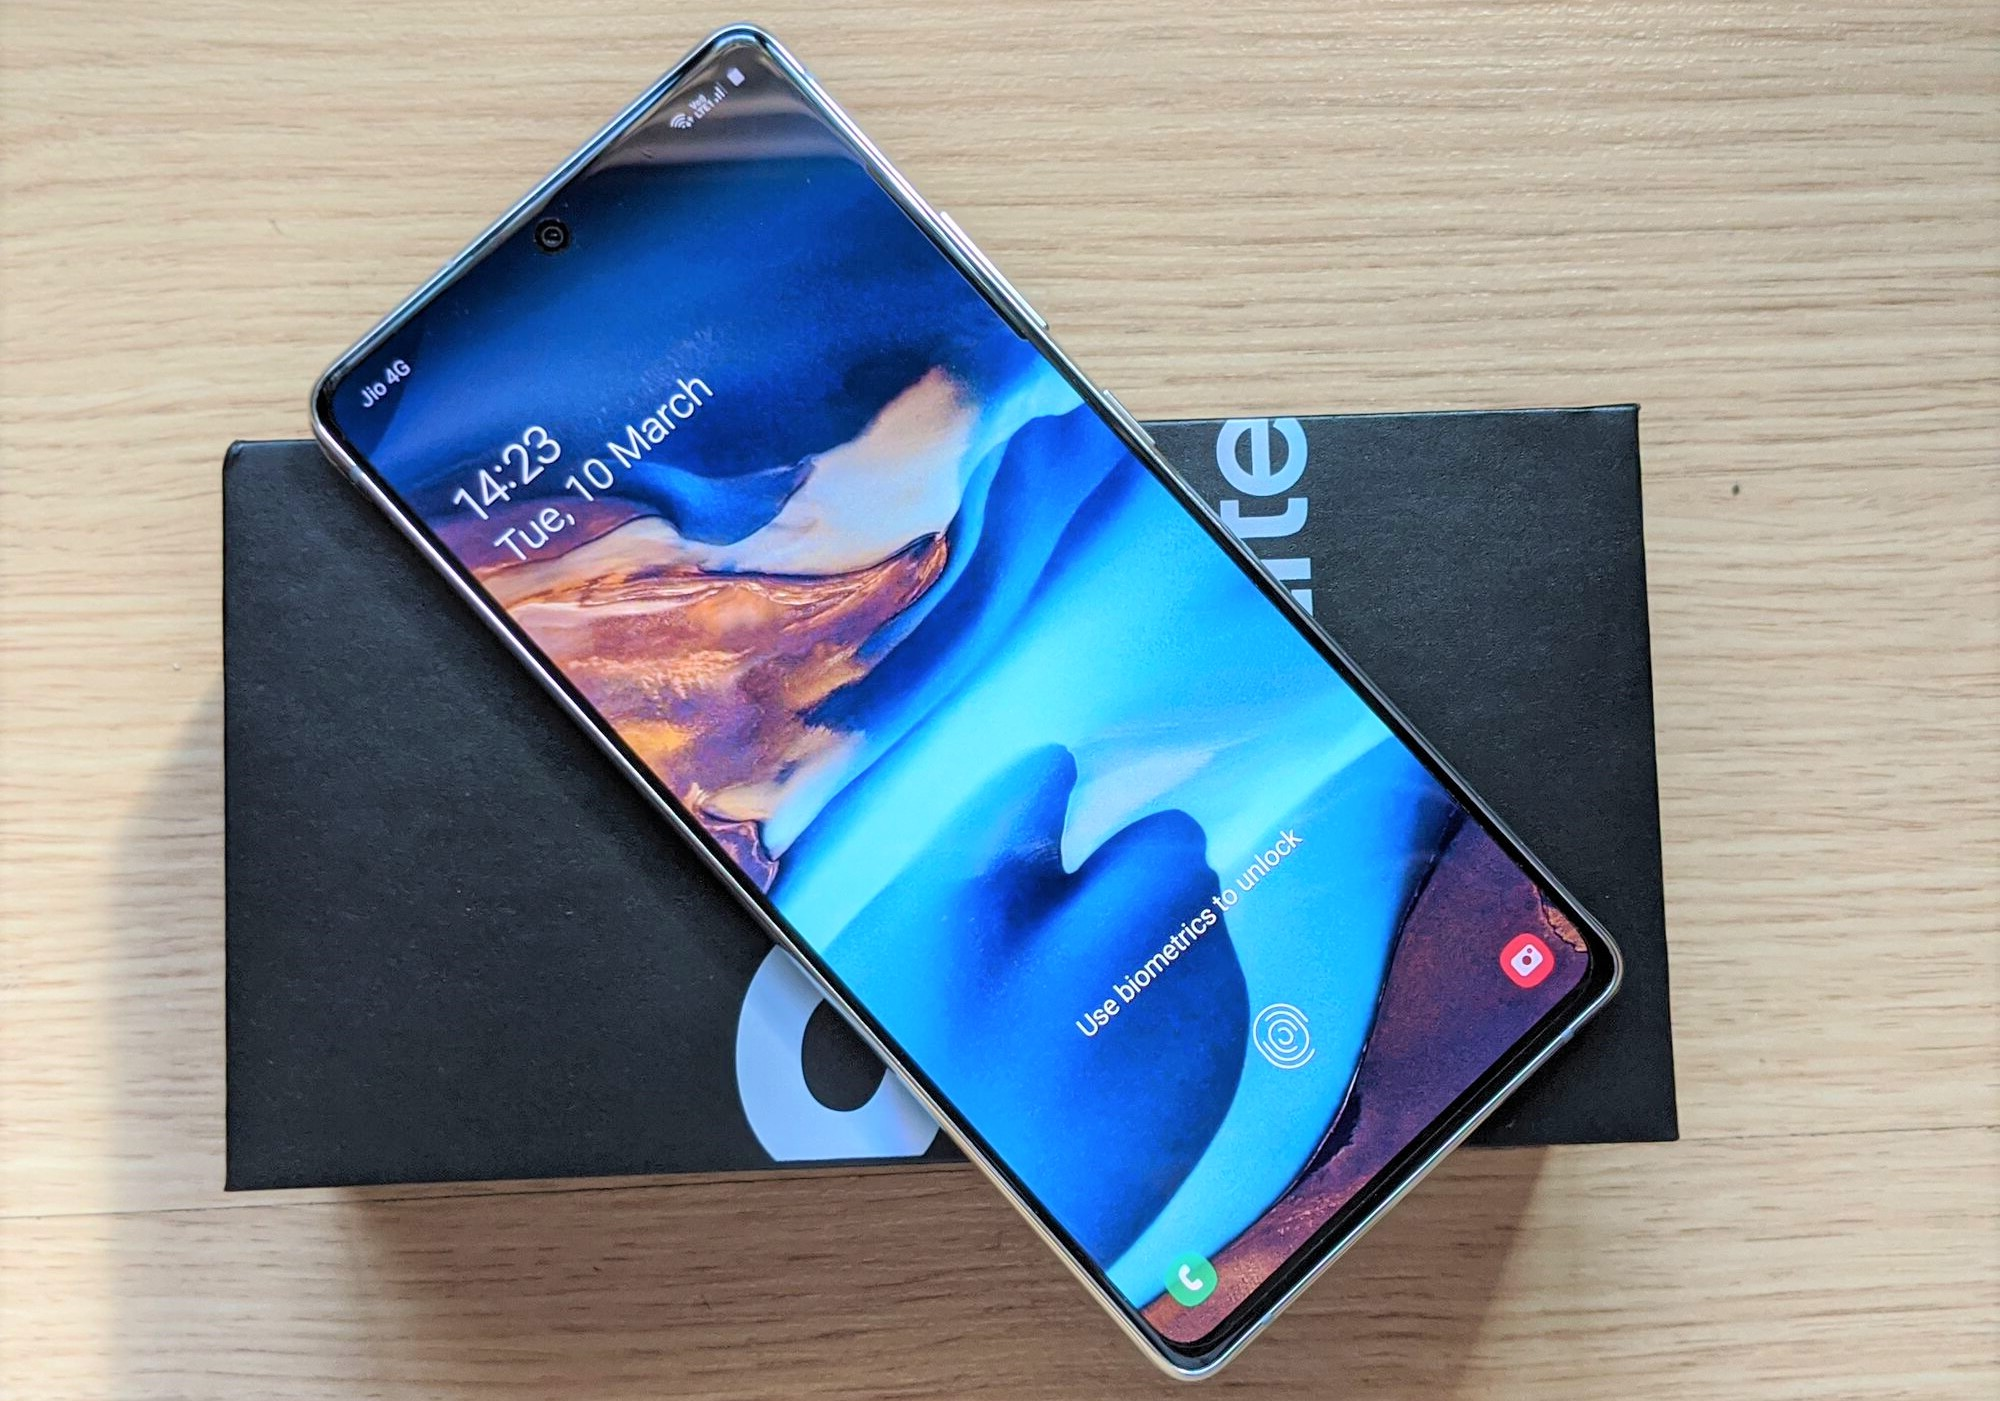 Samsung Galaxy S10 Lite that I purchased for Rs.31,849 (USD 427)